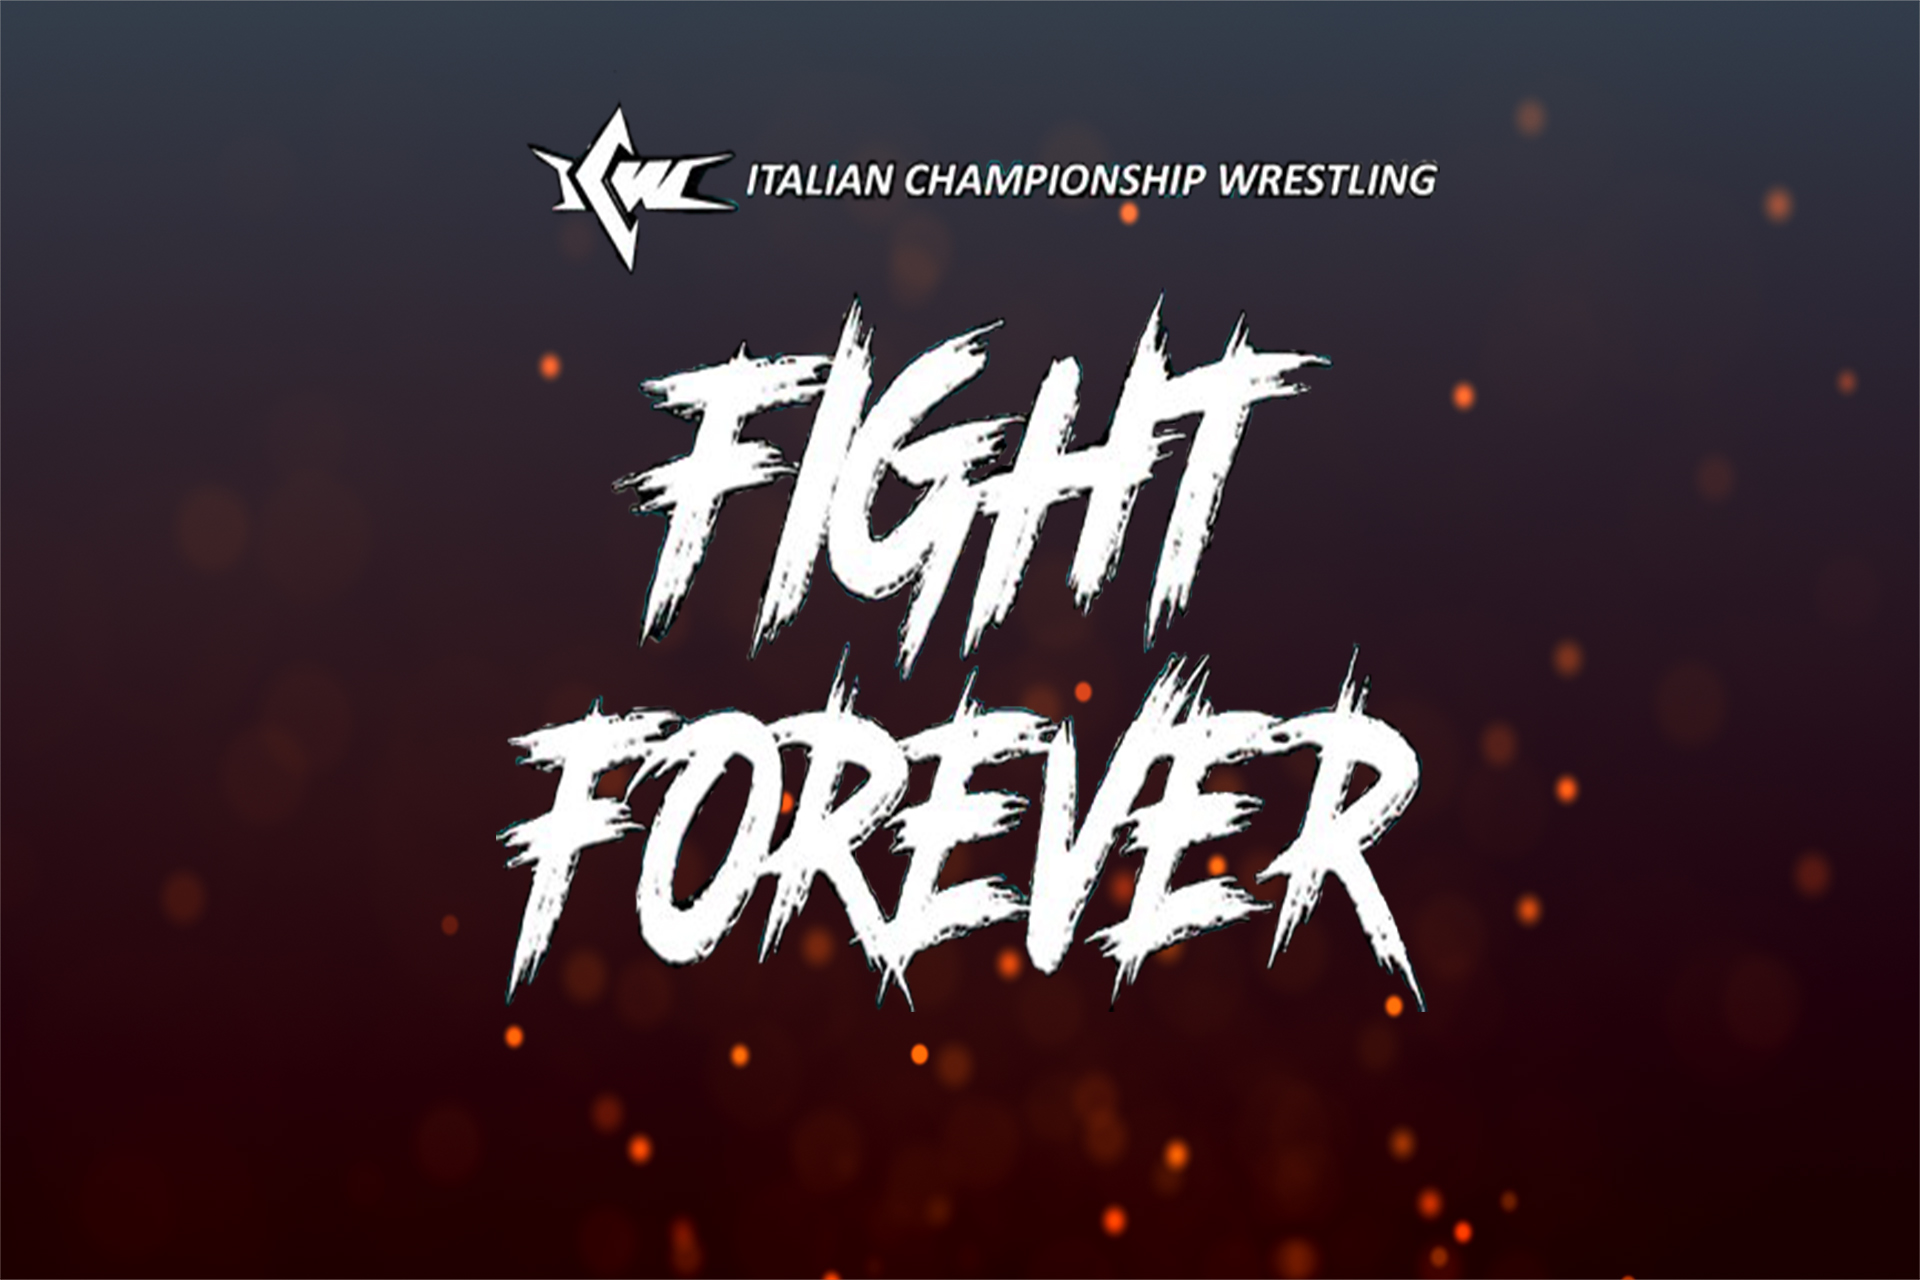 Preview ICW Fight Forever